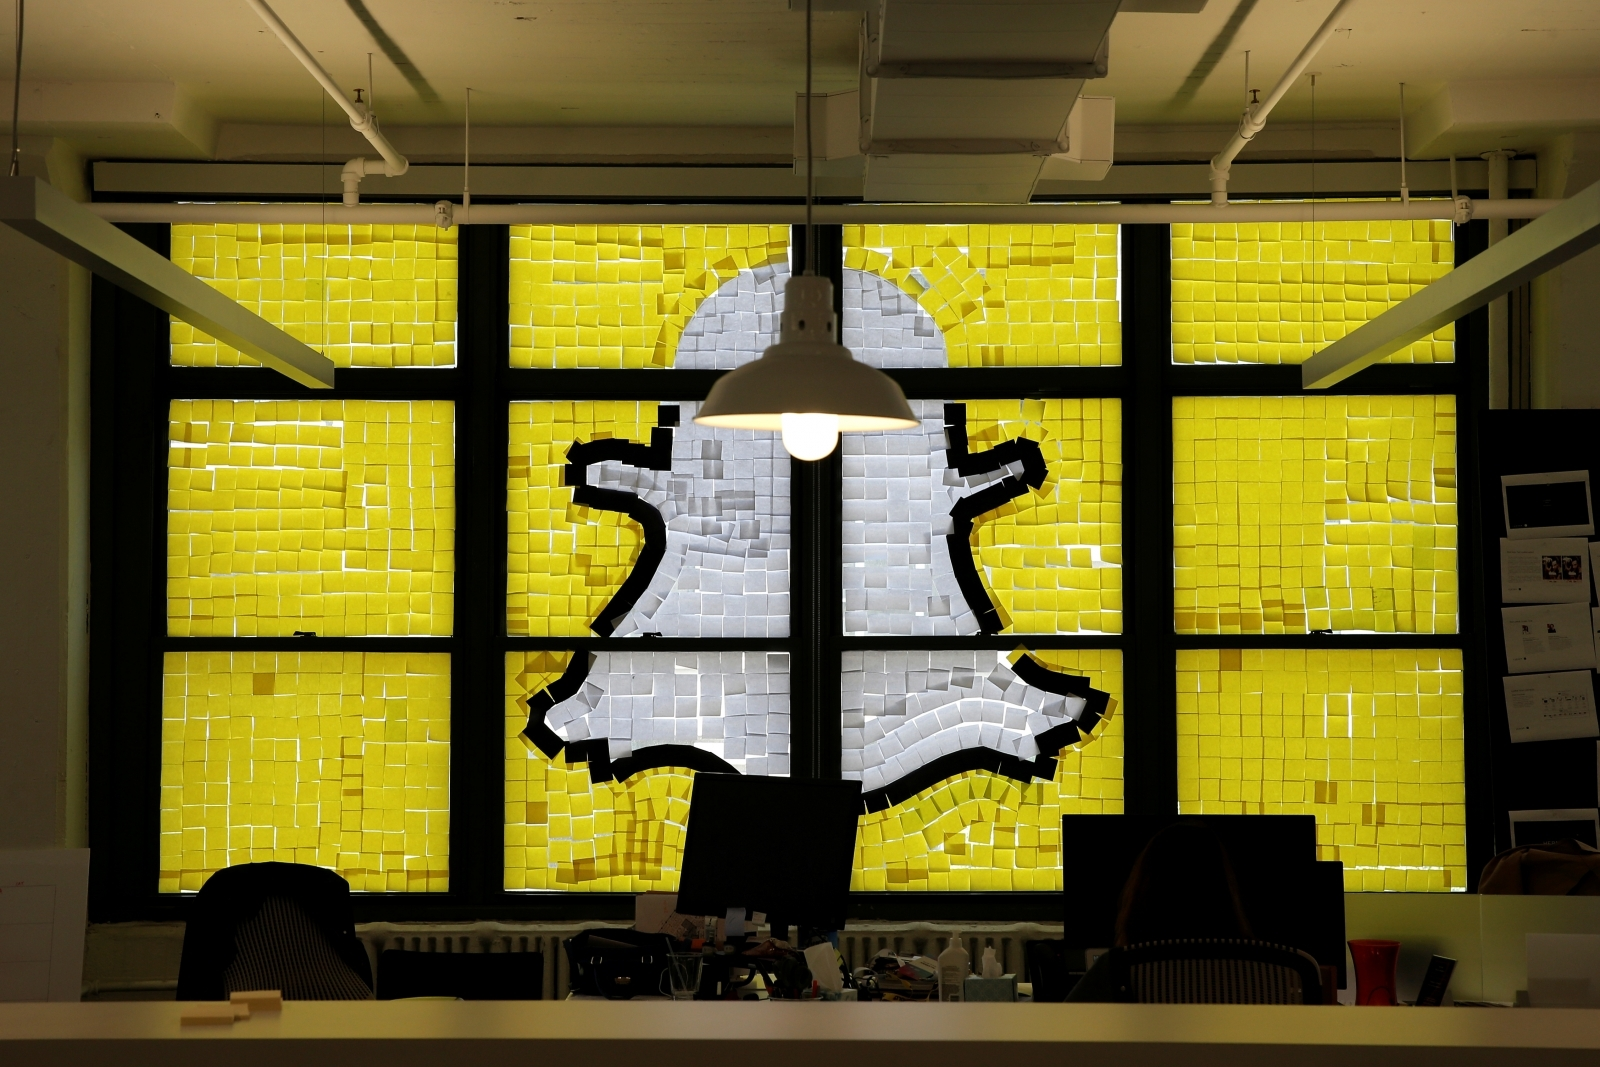 Snapchat blocks access to Al Jazeera in Saudi Arabia